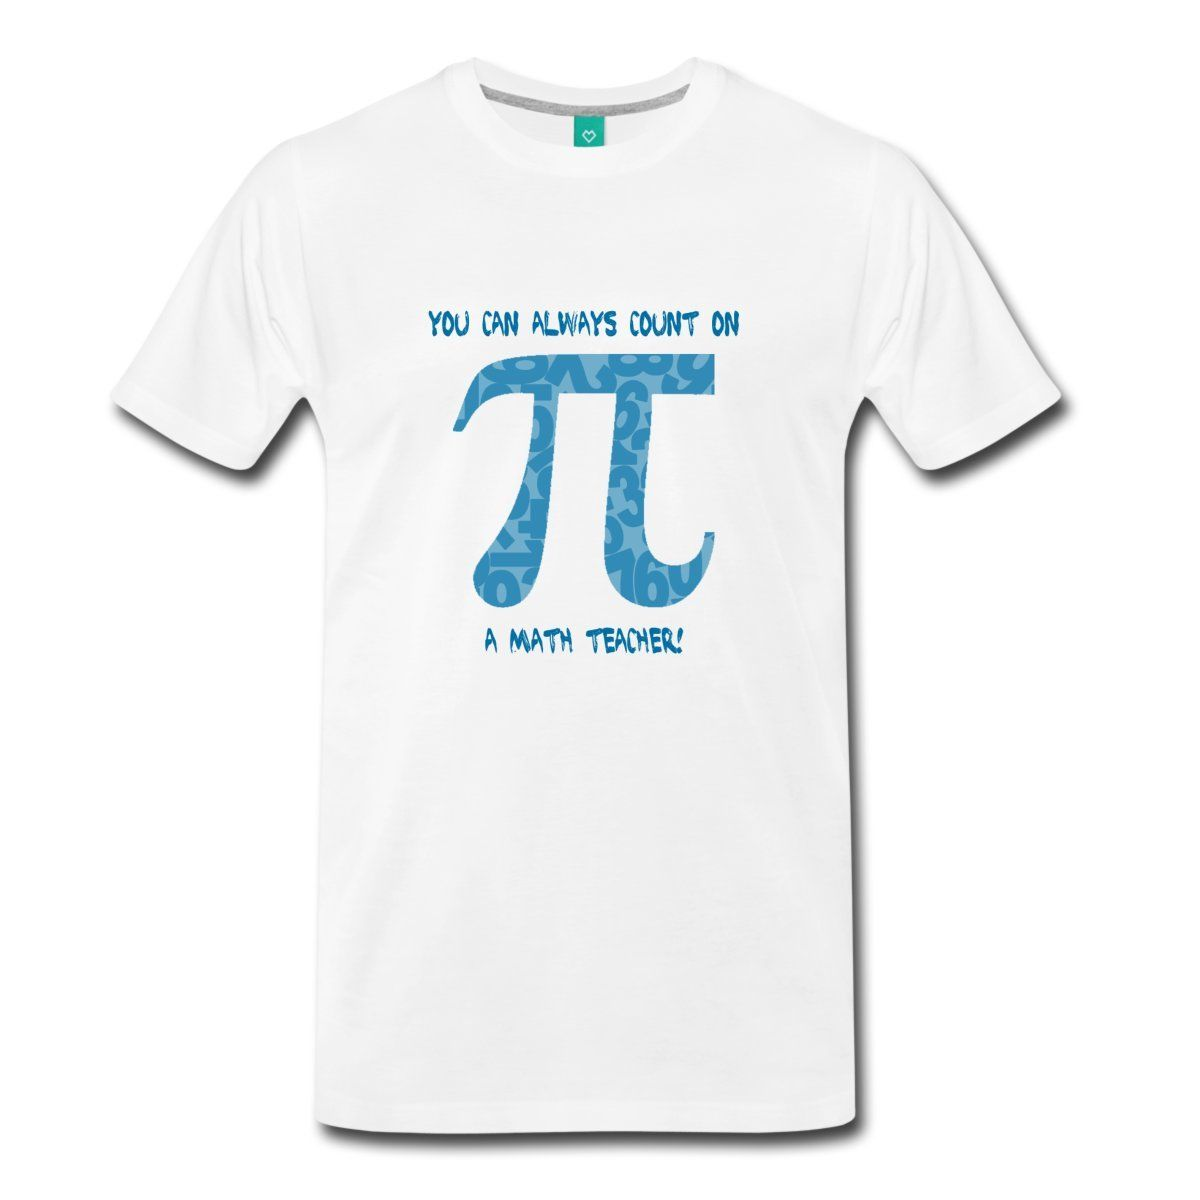 T Shirt Gift More Size And Colors Pi Day Math Teacher Christmas MenS Crew Neck Short-Sleeve Premium Tee Shirts